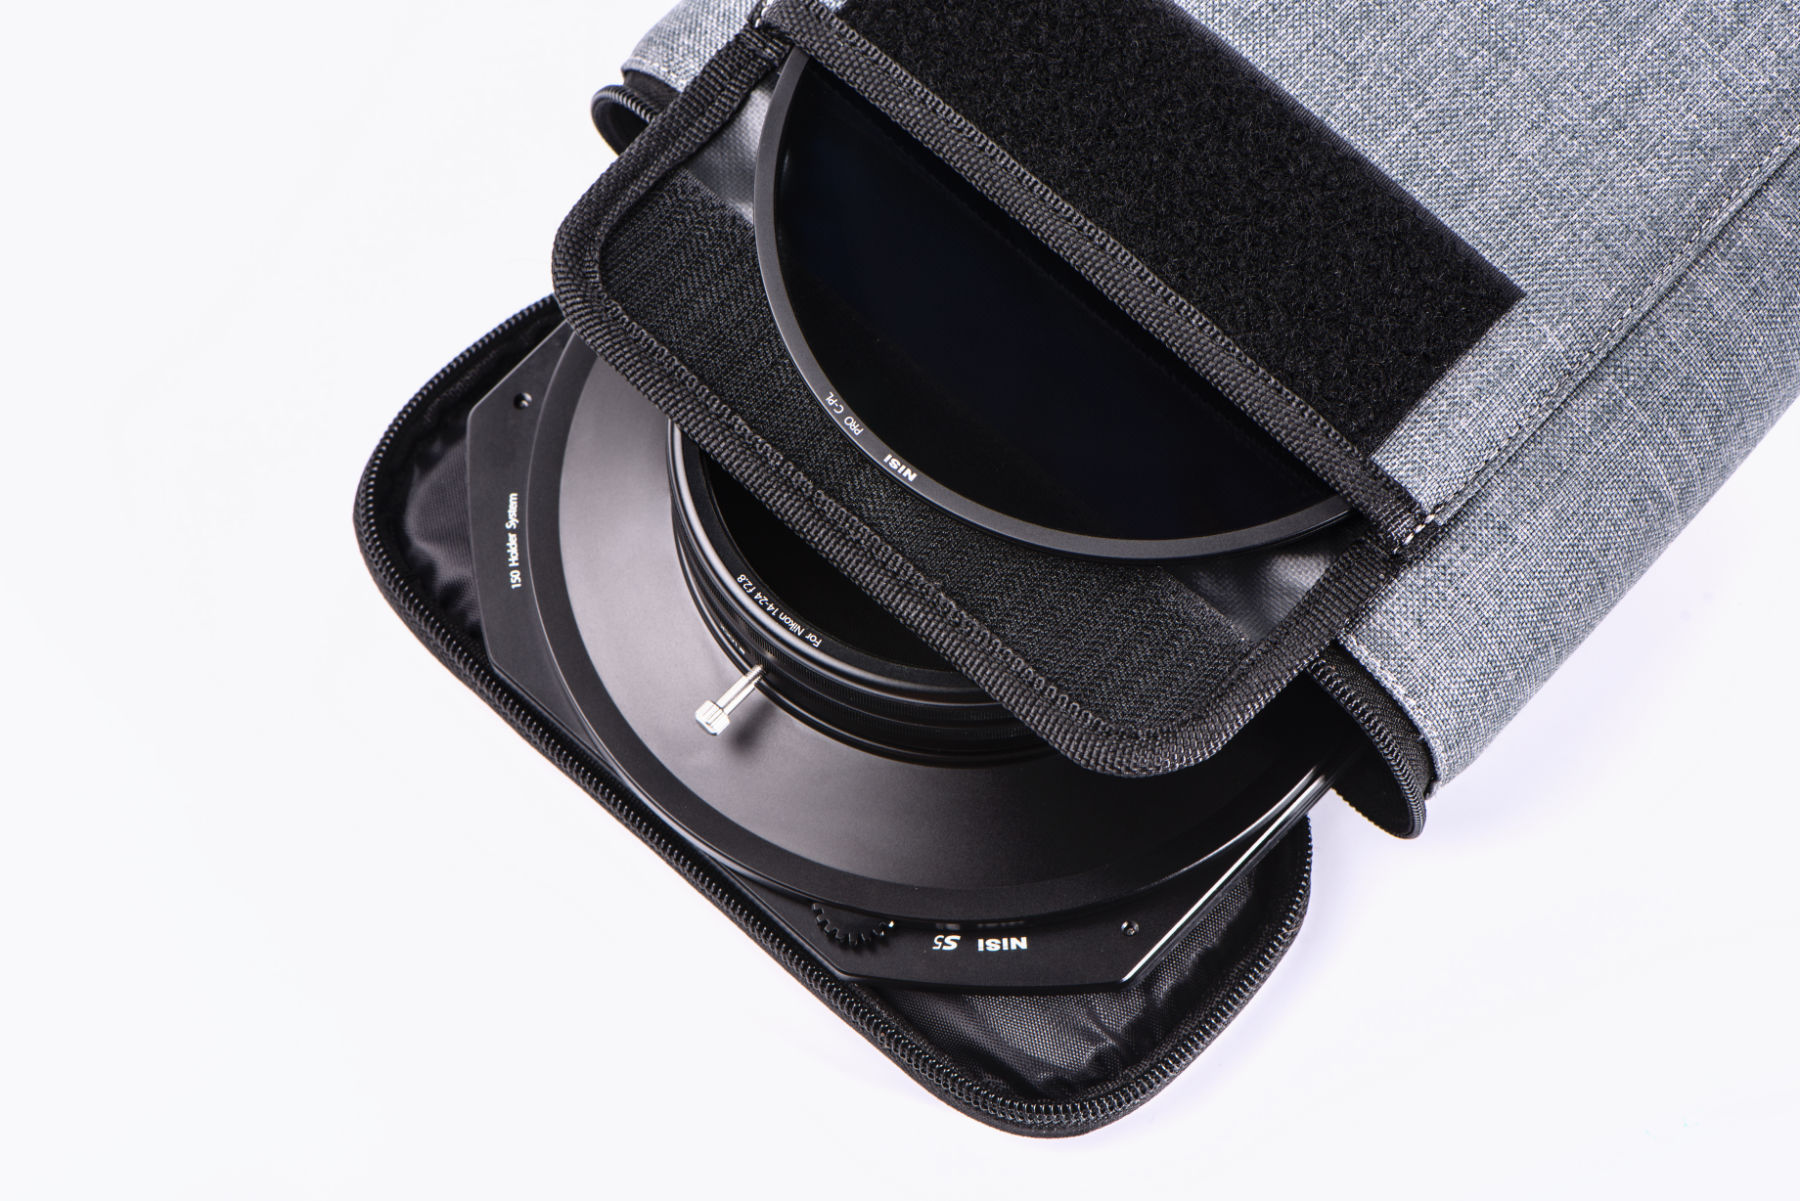 NiSi 150mm System Filter Pouch Hold up to 8 pcs 150mm-wide or S5 Circular Filters